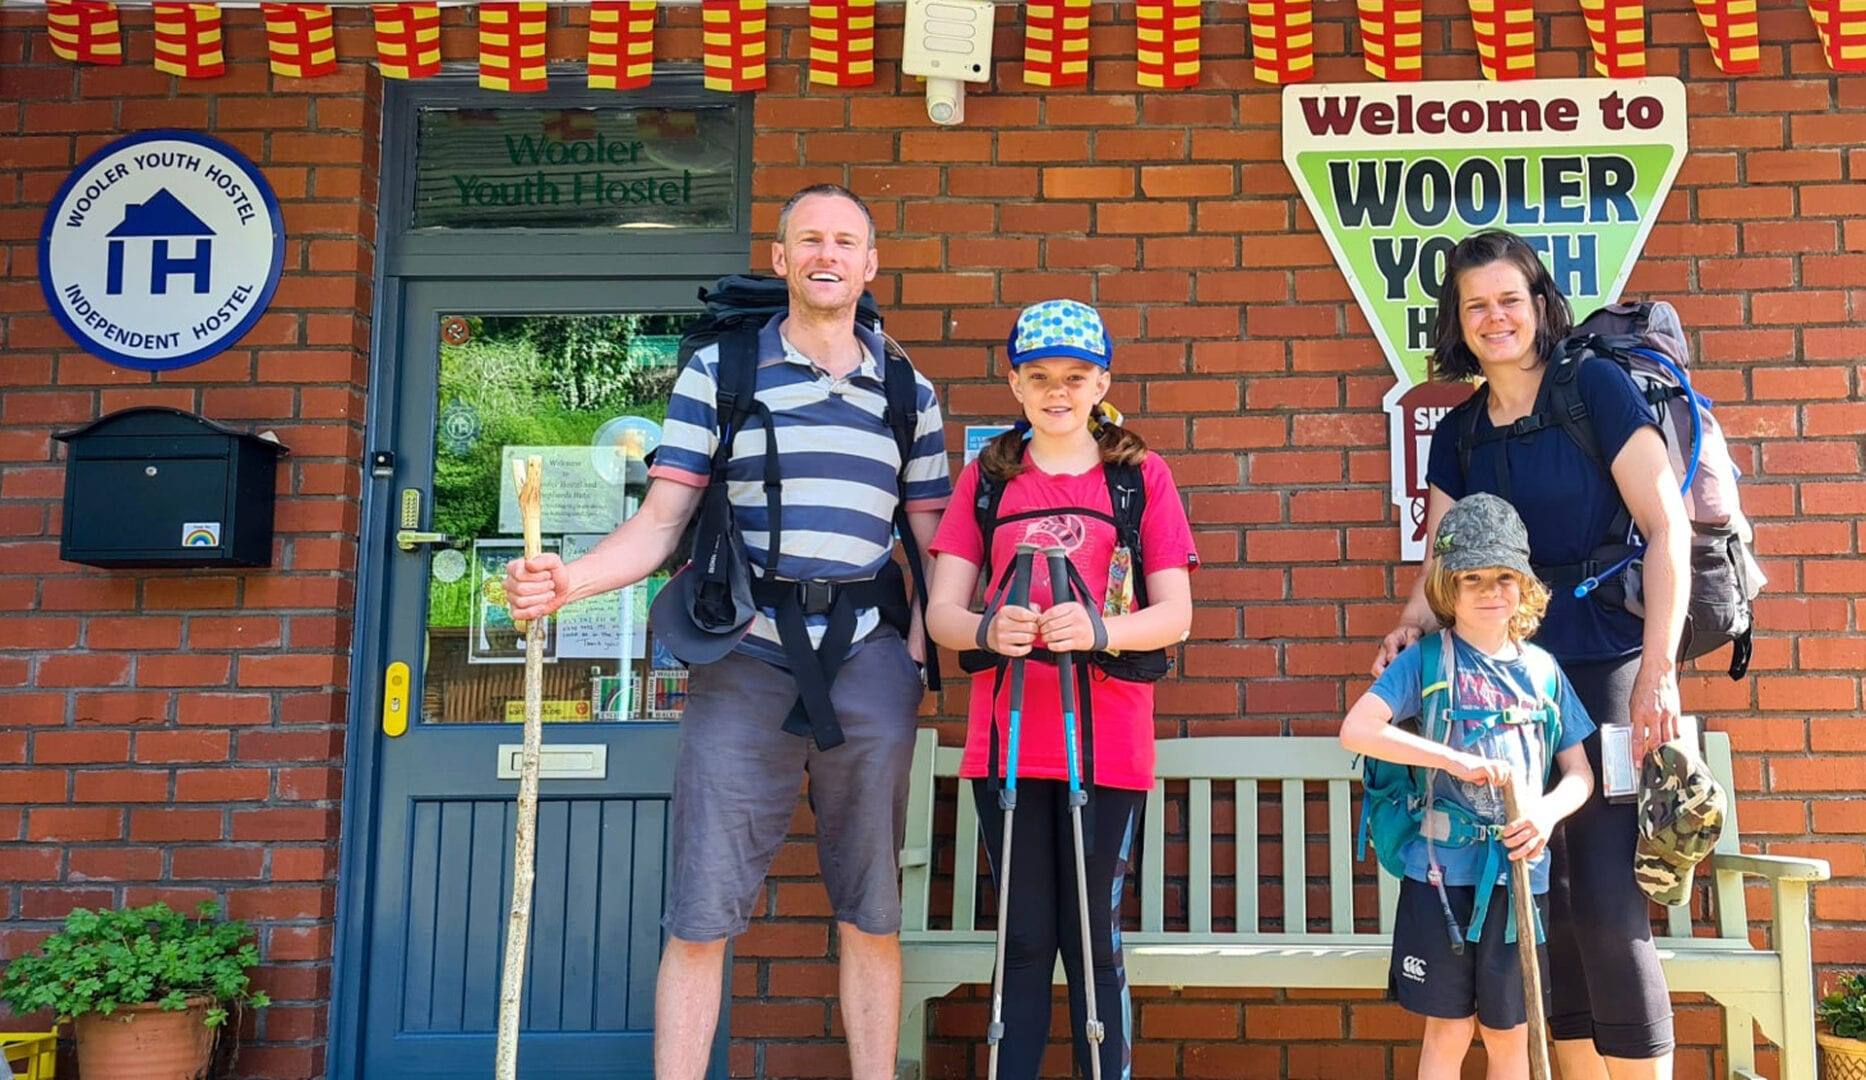 family at wooler youth hostel with independent hostels sign